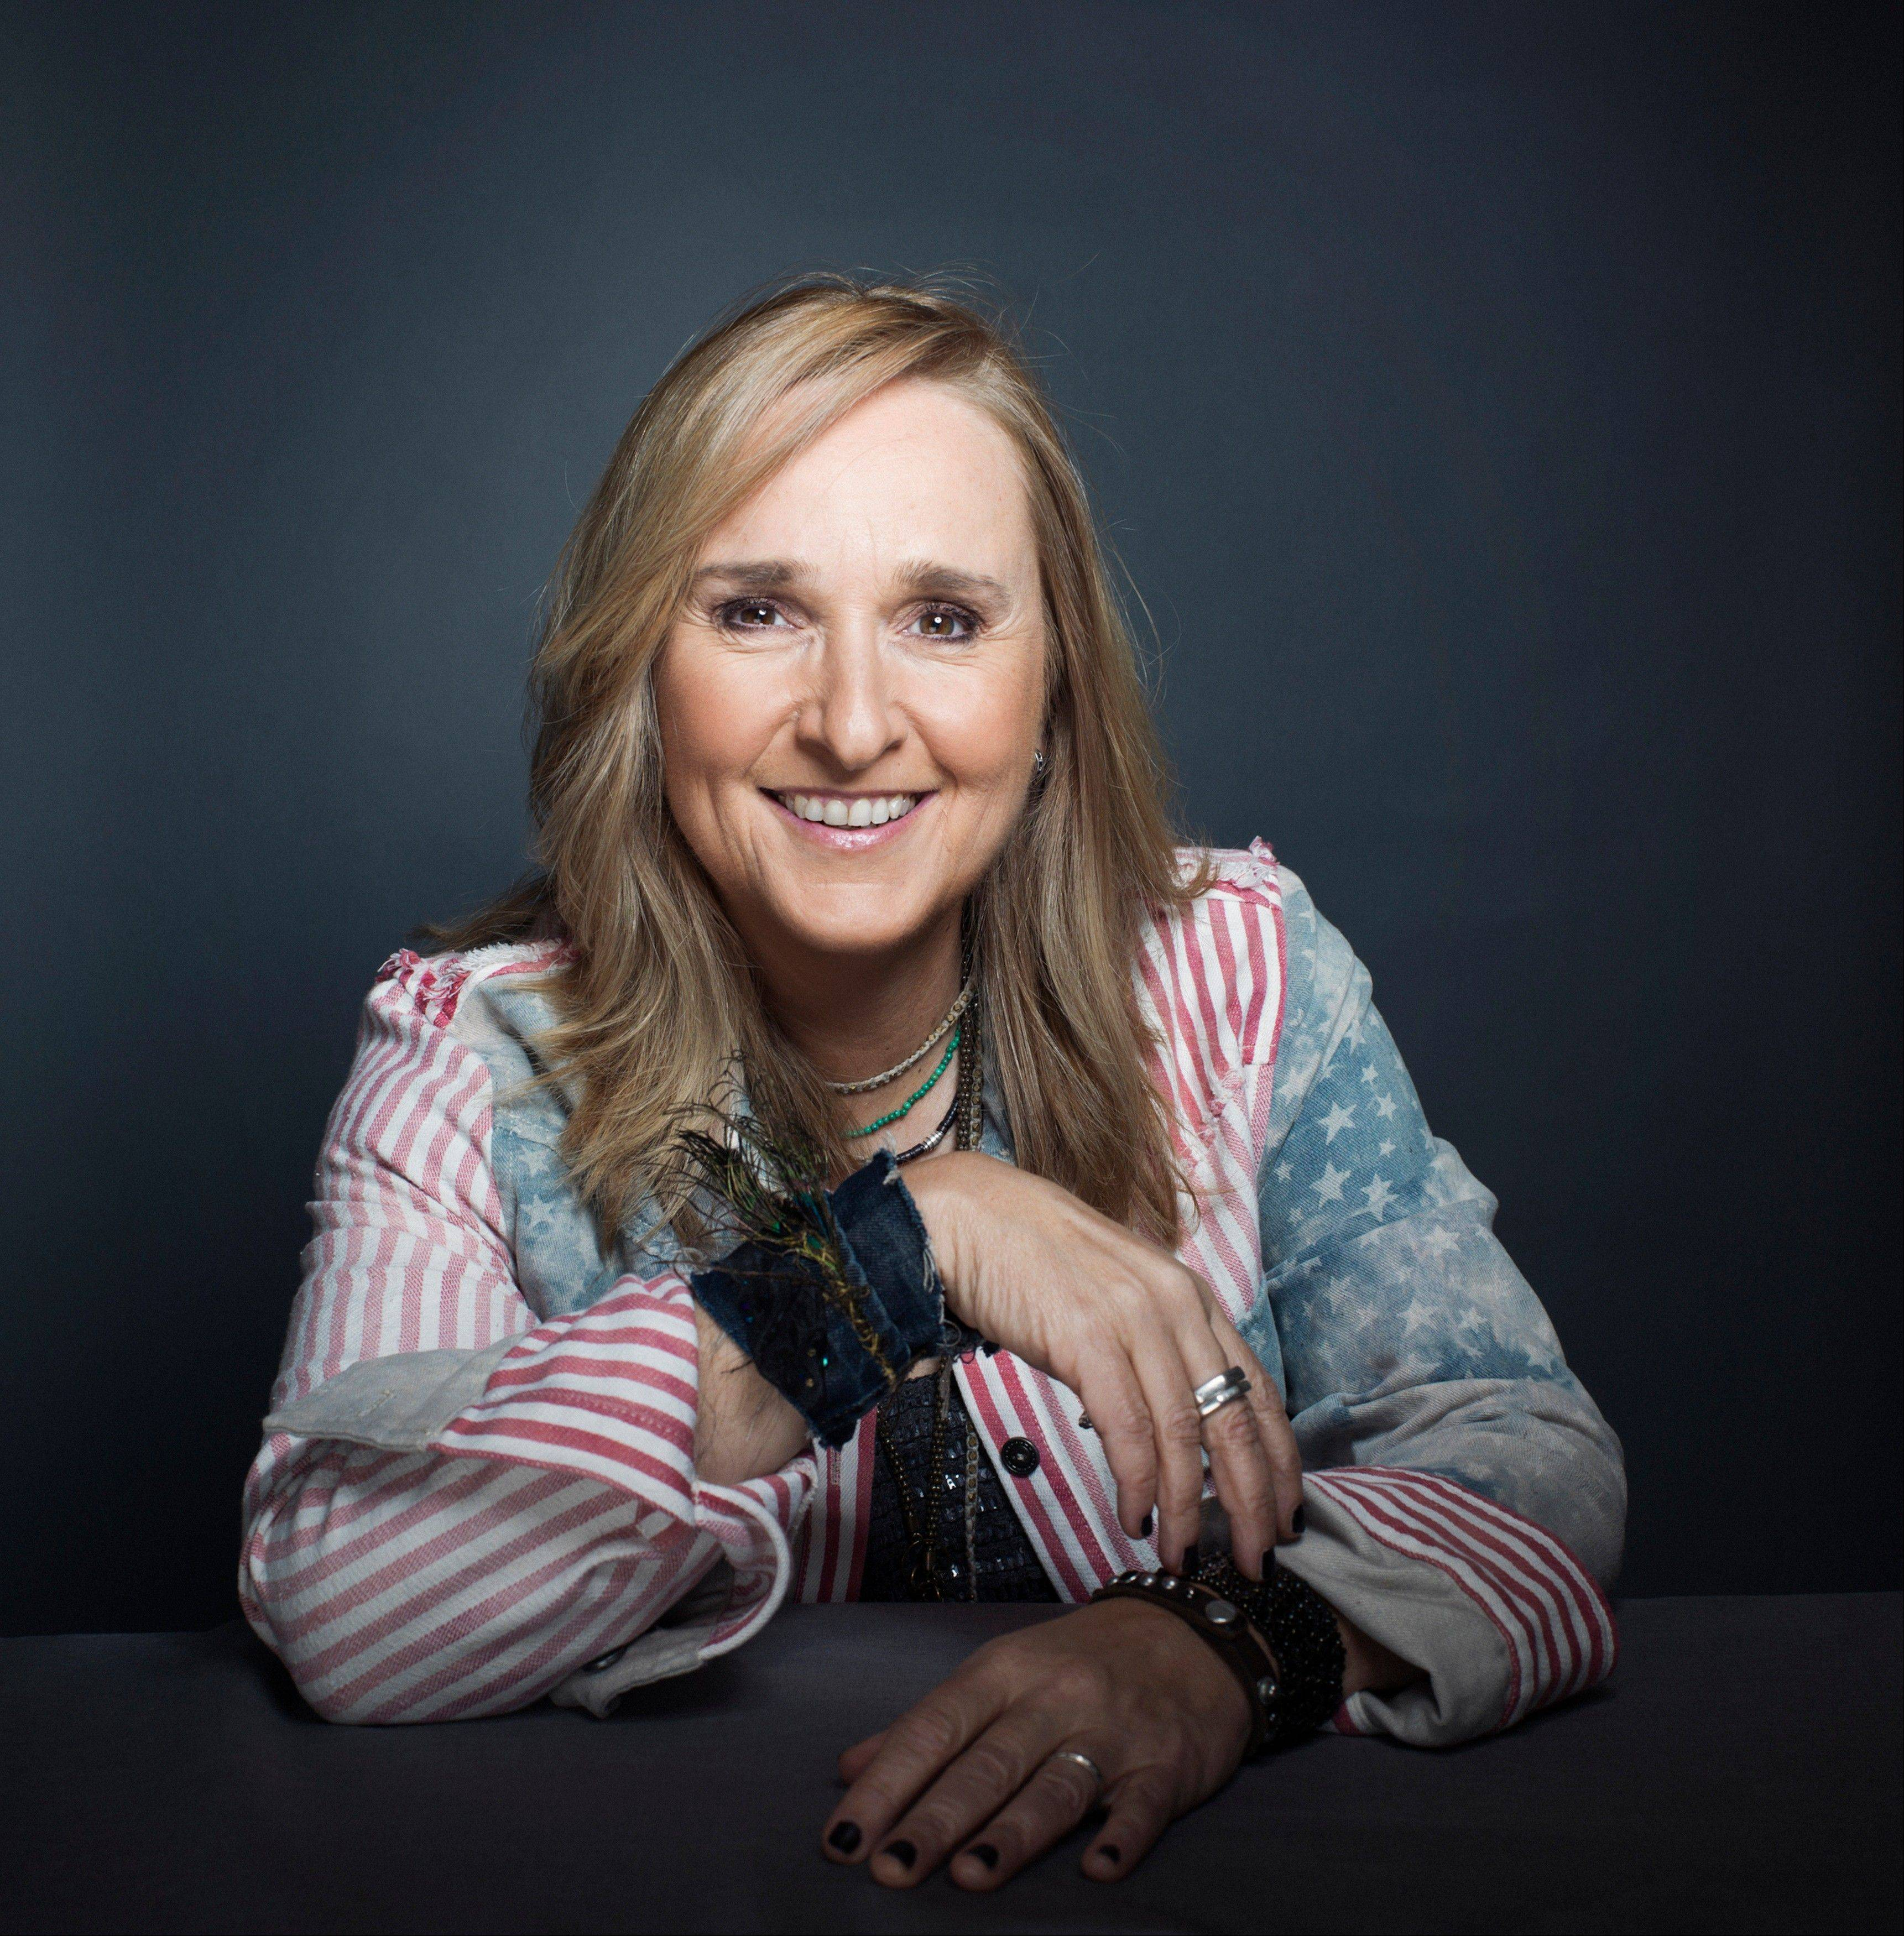 Singer-songwriter Melissa Etheridge is set to perform at the Ravinia Festival in Highland Park.